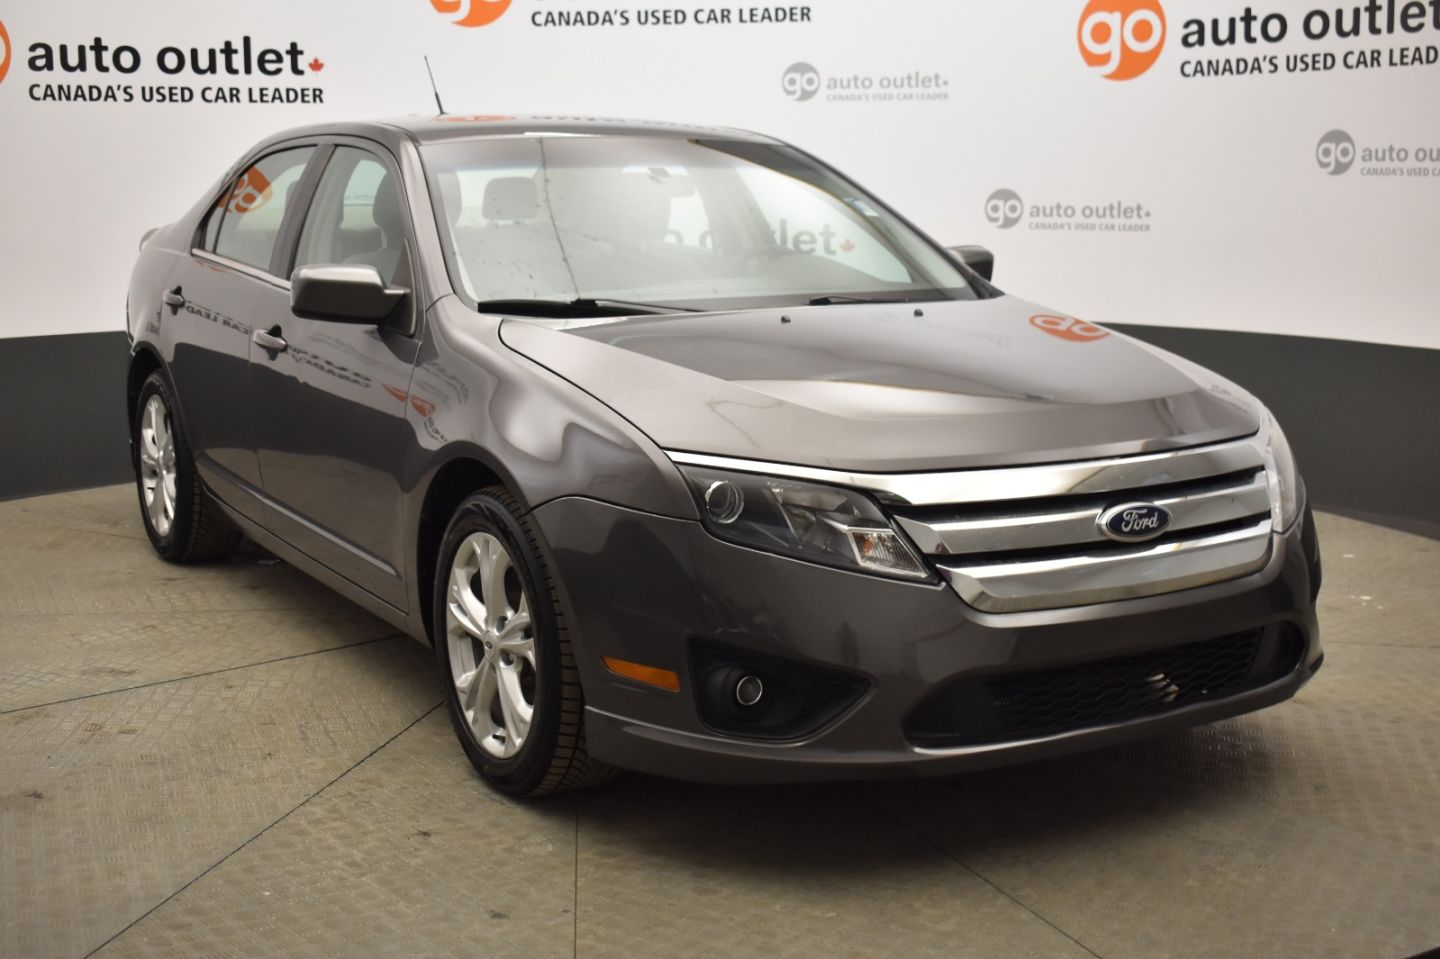 2012 Ford Fusion SE for sale in Leduc, Alberta